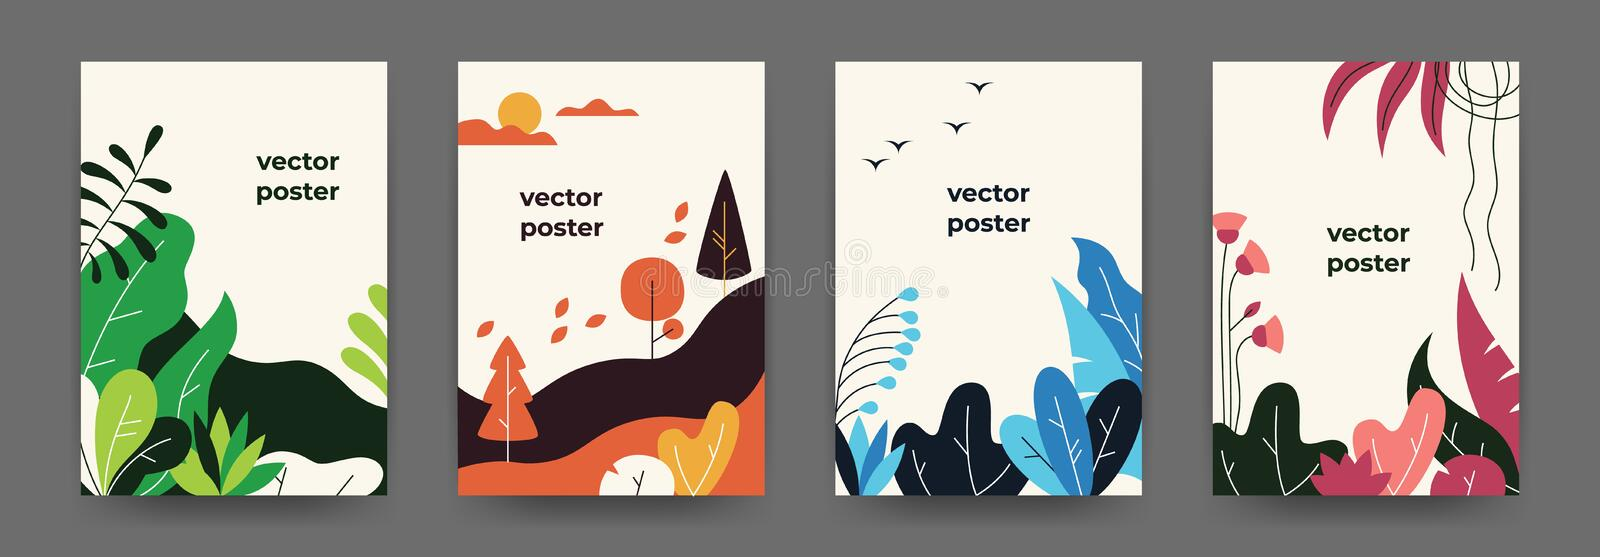 Flat plant posters. Gradient abstract geometric banners with copy space floral frames, jungle leaves and plants. Vector stock illustration